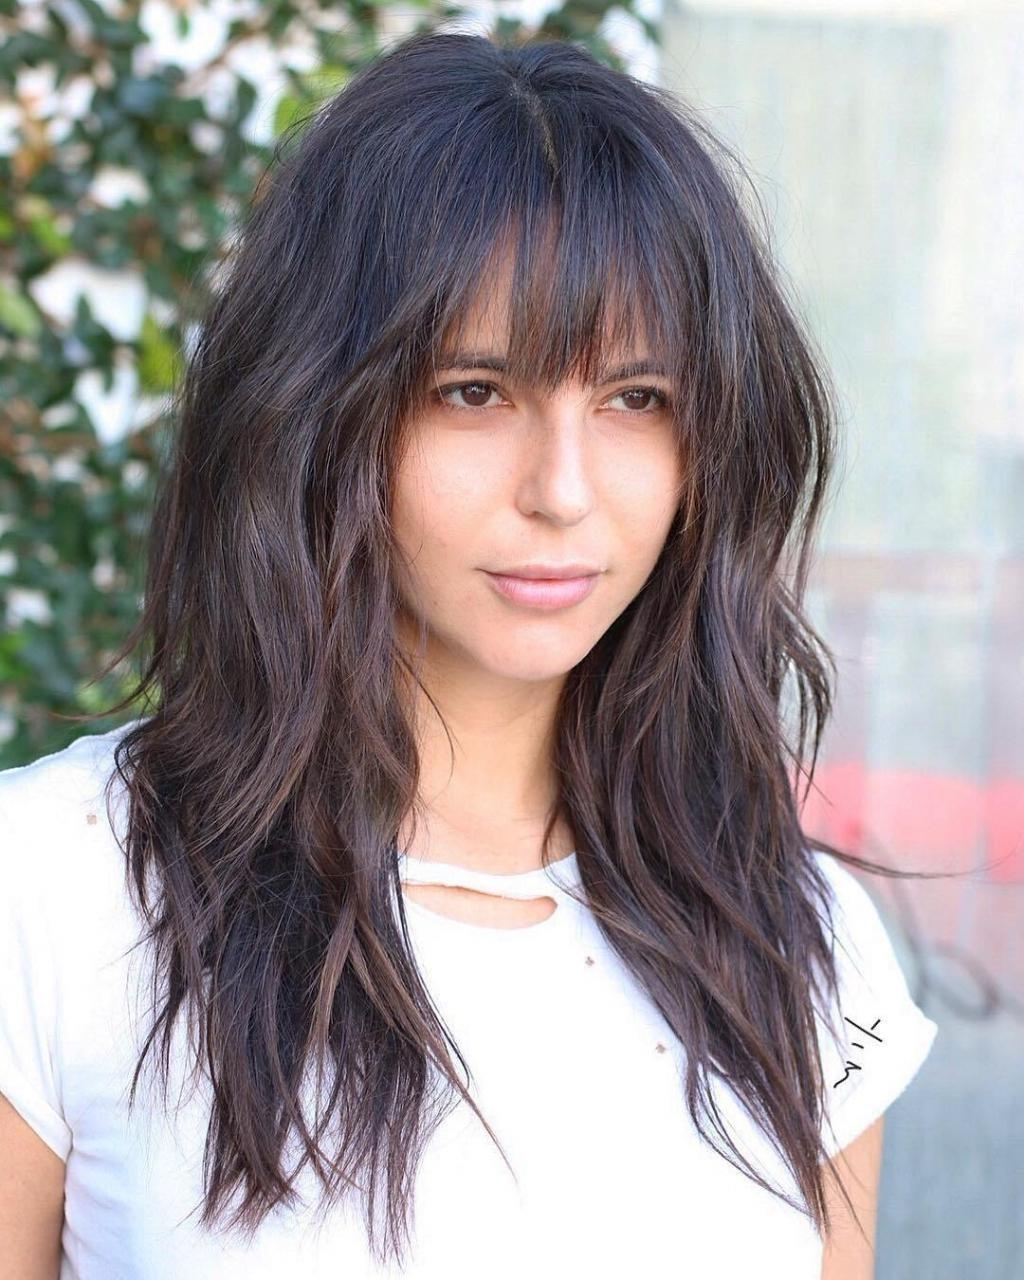 40 Layered Low Maintenance Medium Length Hairstyles Us Layered Low Maintenance Medium Length Hairstyles For Thick Hair